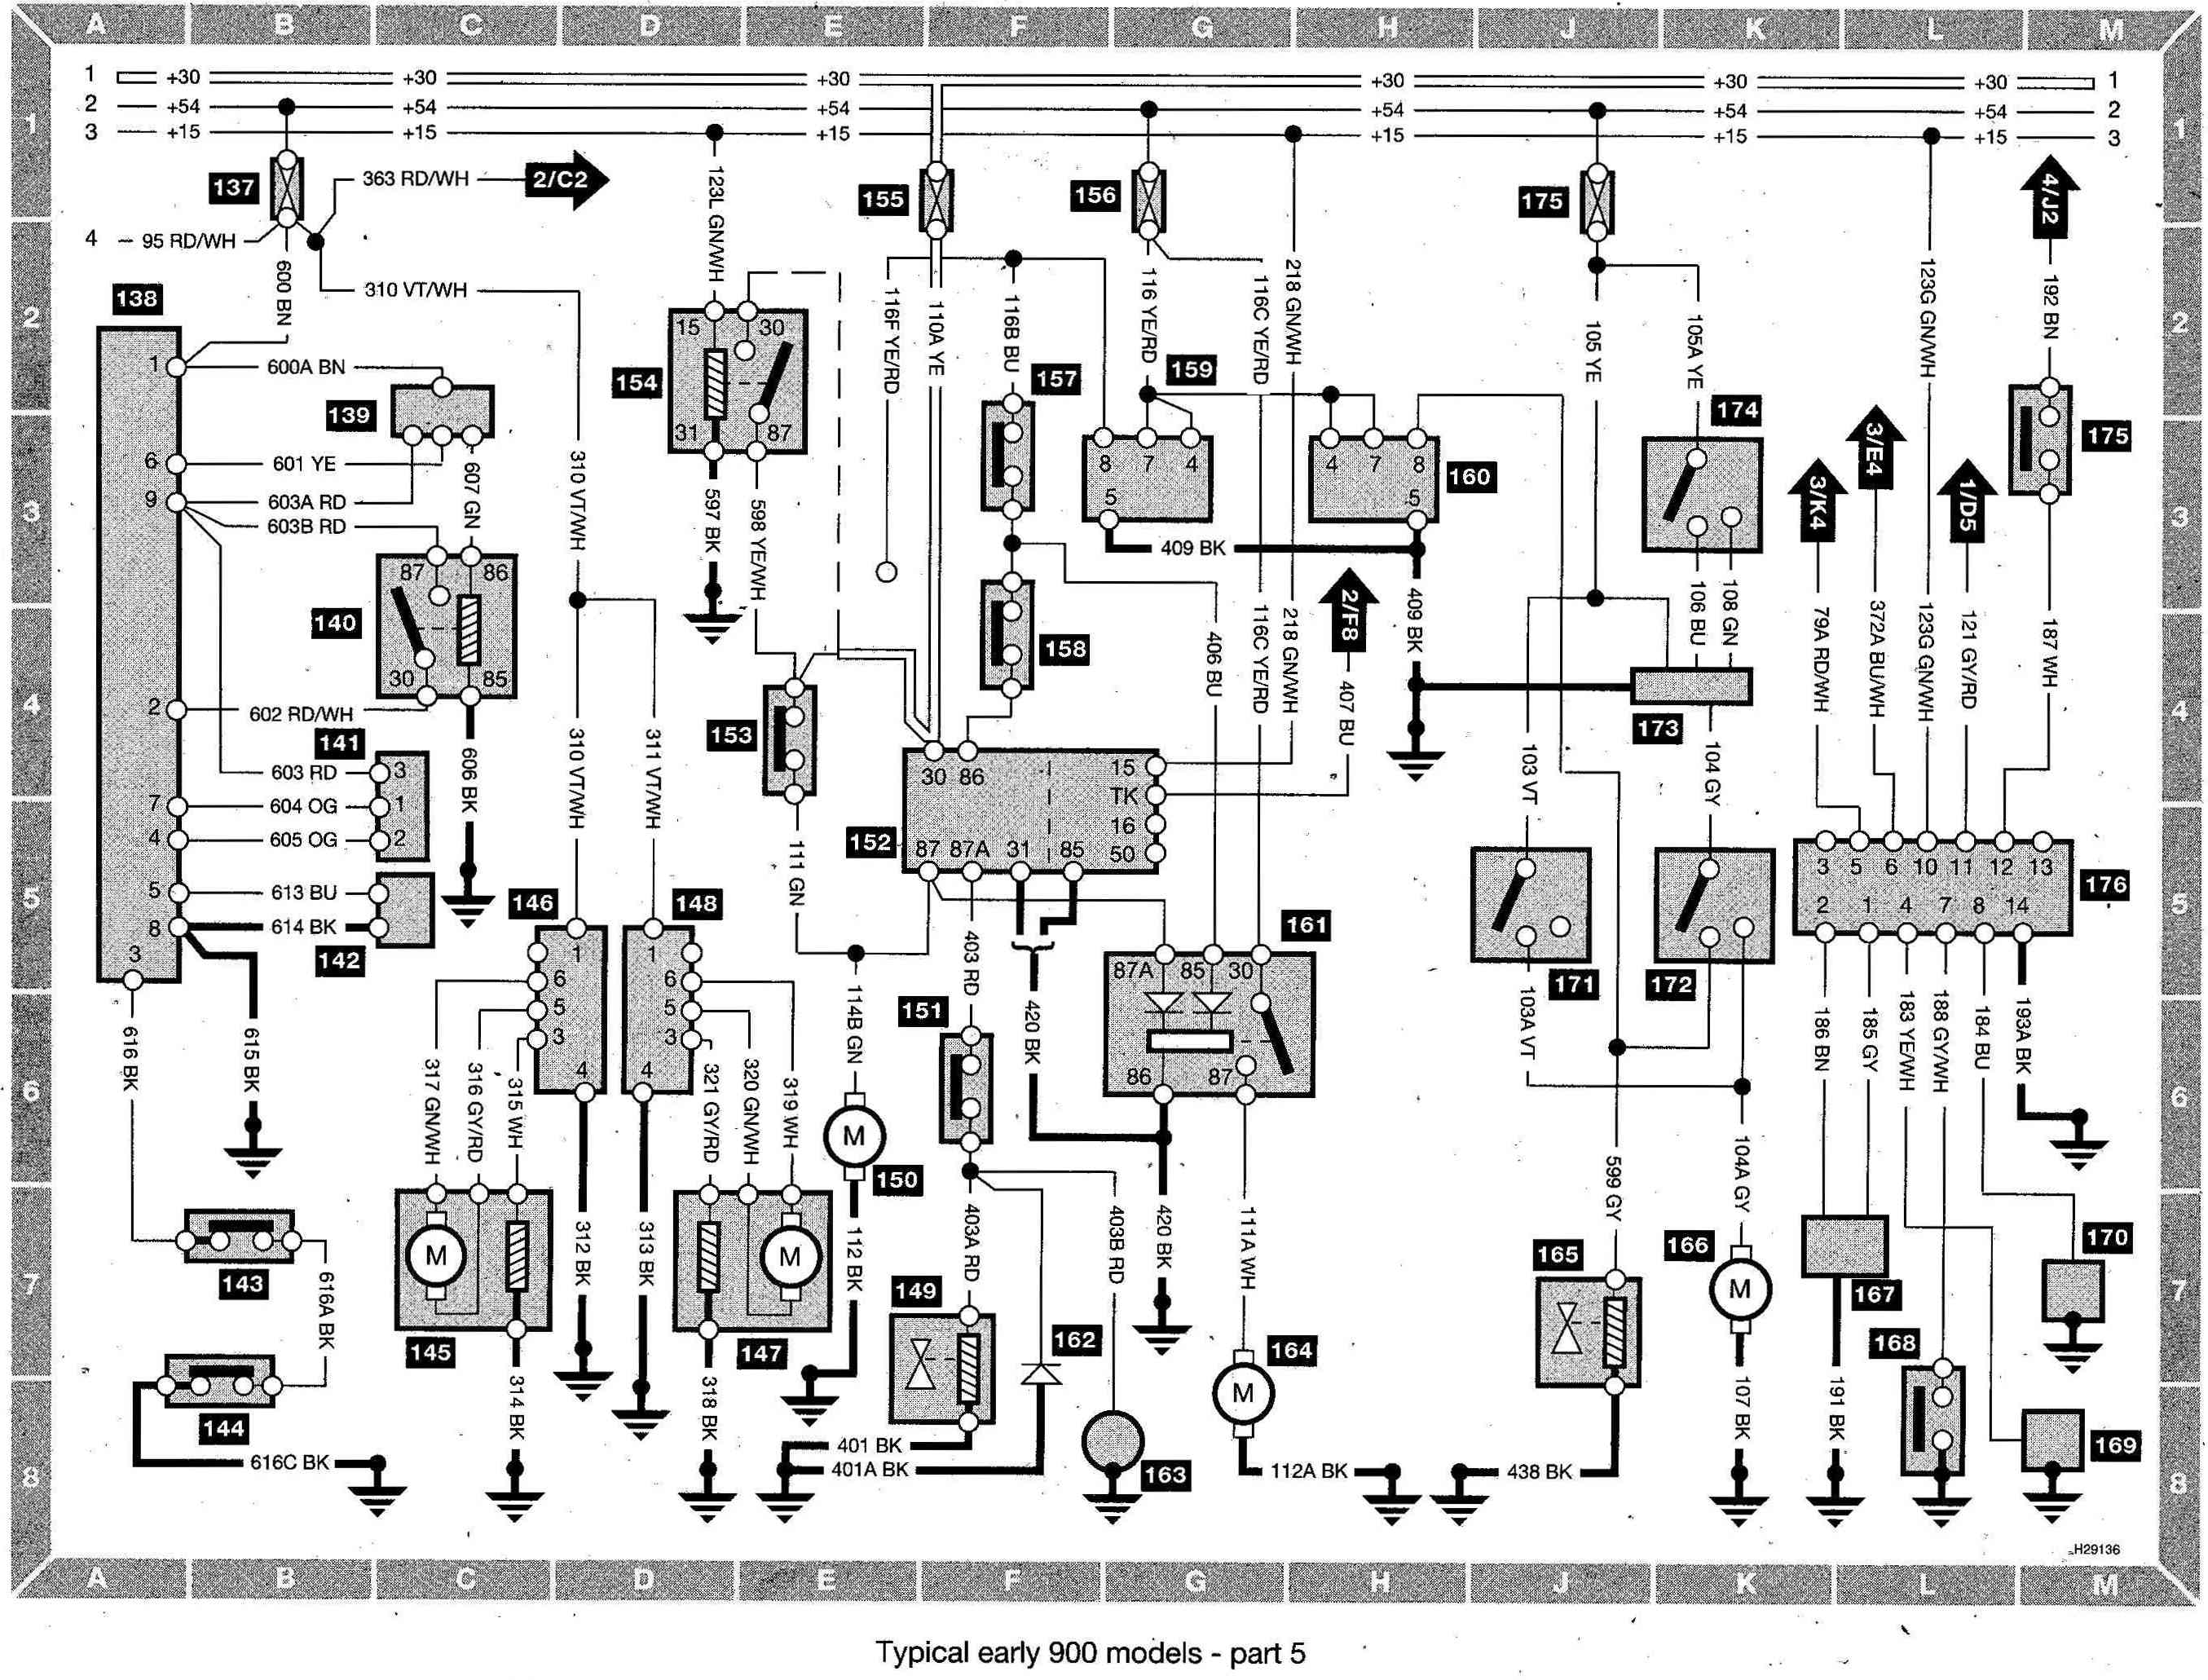 Saab 900 Wiring diagram (early models) part 5 cool saab 900 wiring diagram pictures best image diagram 8we us 2004 saab 9 5 wiring diagram at virtualis.co